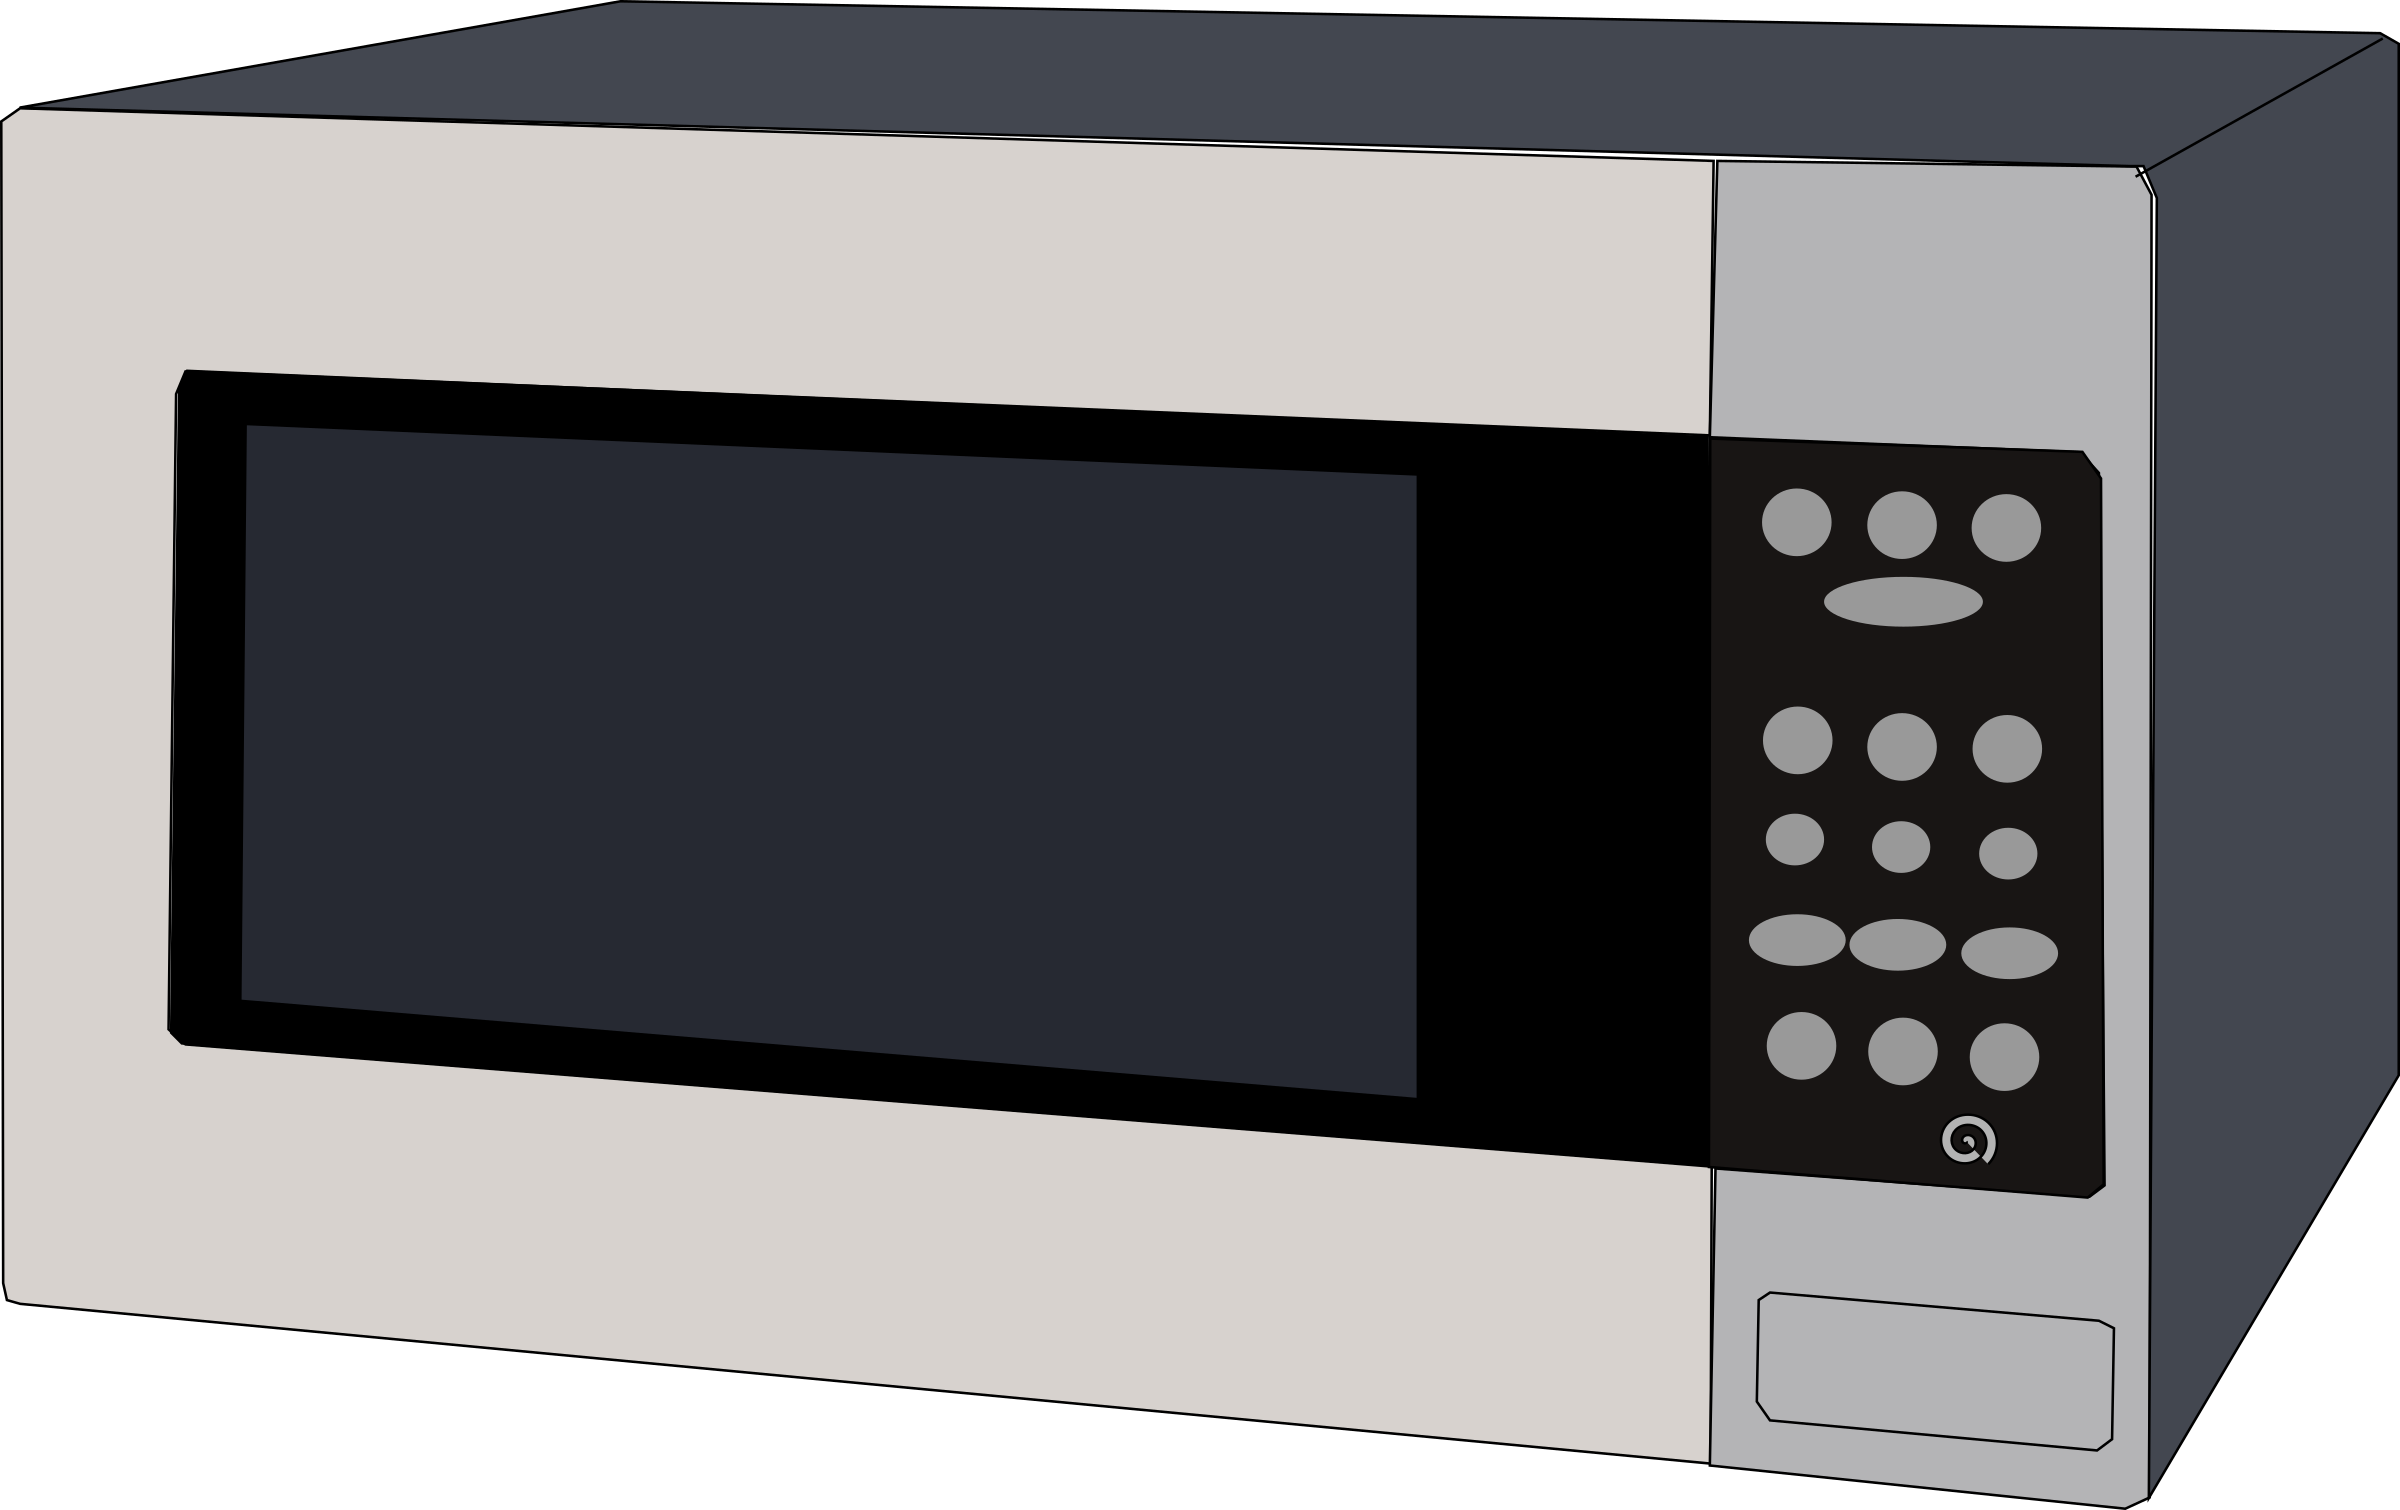 clipart stock Microwave. Toaster clipart oven